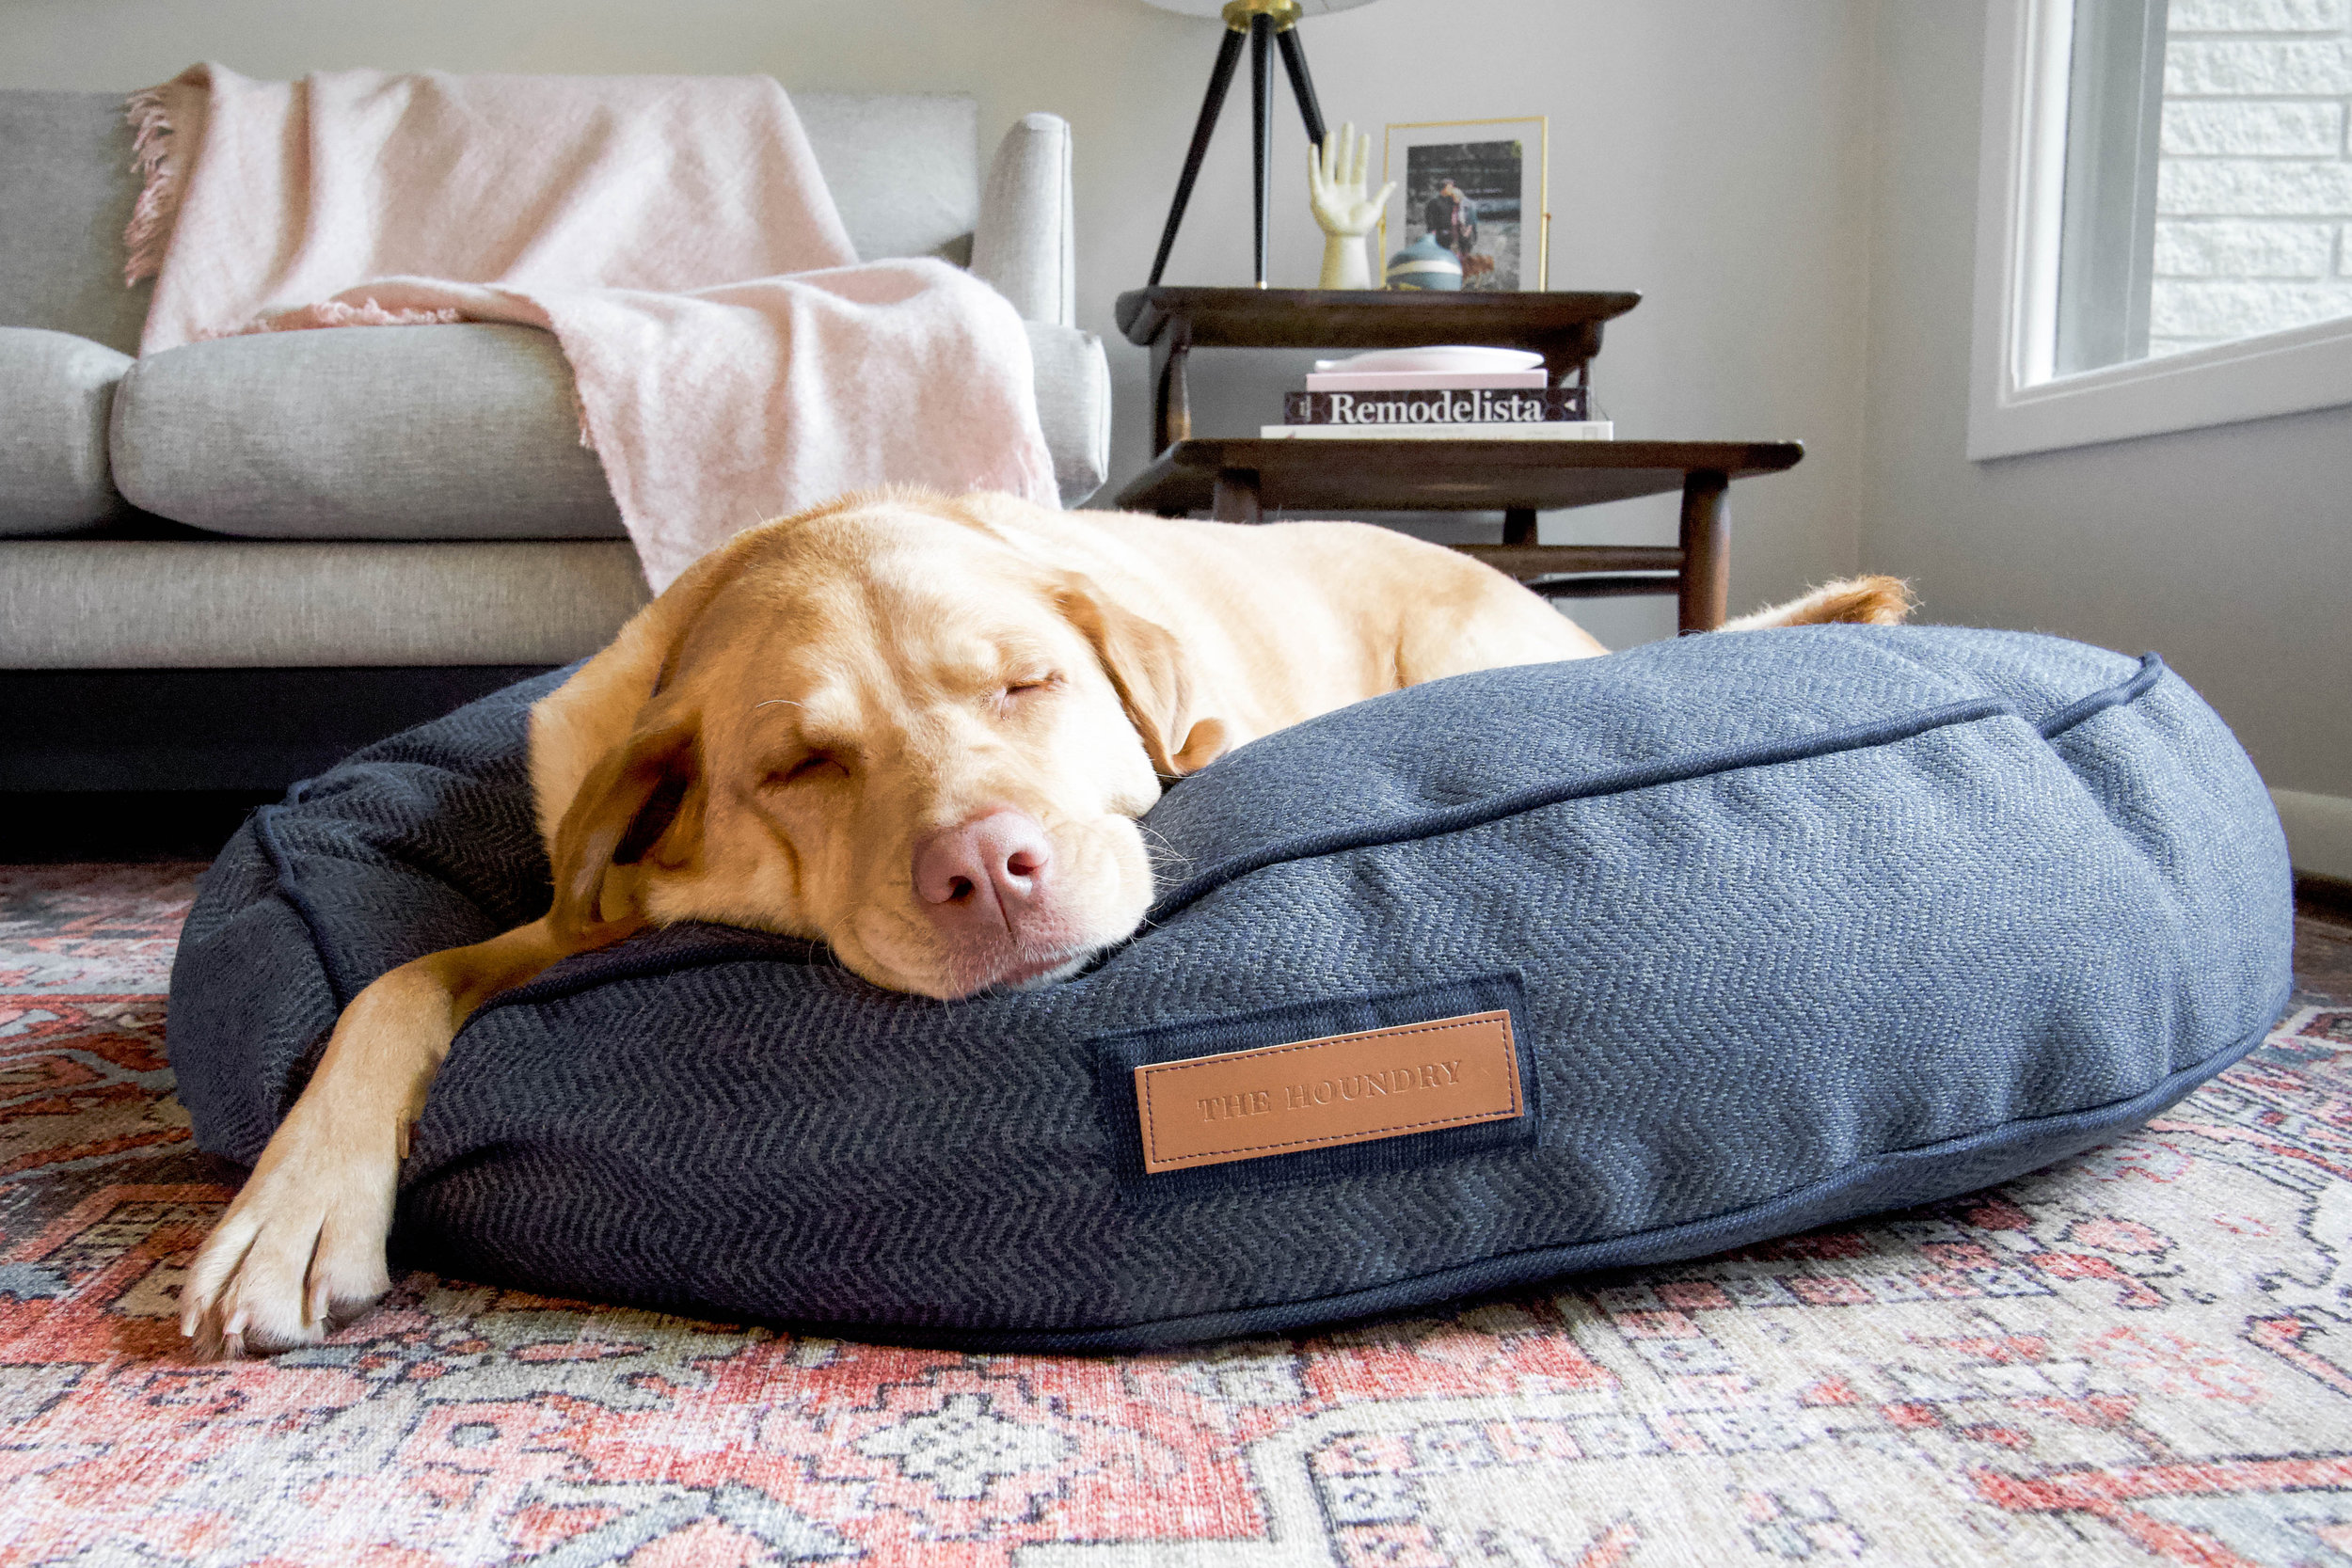 Round Beds - Have a dog who's a freestyle sleeper? On their back one minute, belly the next, curled into a donut a minute later? Our Round Bed is the one for them! The classic round shape looks great in rooms where you don't want your pet's bed pushed into a corner.  Let it float in the middle of room so your fur baby is always part of the action. Each bed has a contrasting piping around the two edges, giving it a tailored look. Plush and responsive, the Round Bed refuses to clump or flatten and will be your pet's favorite spot to snooze day in and day out.